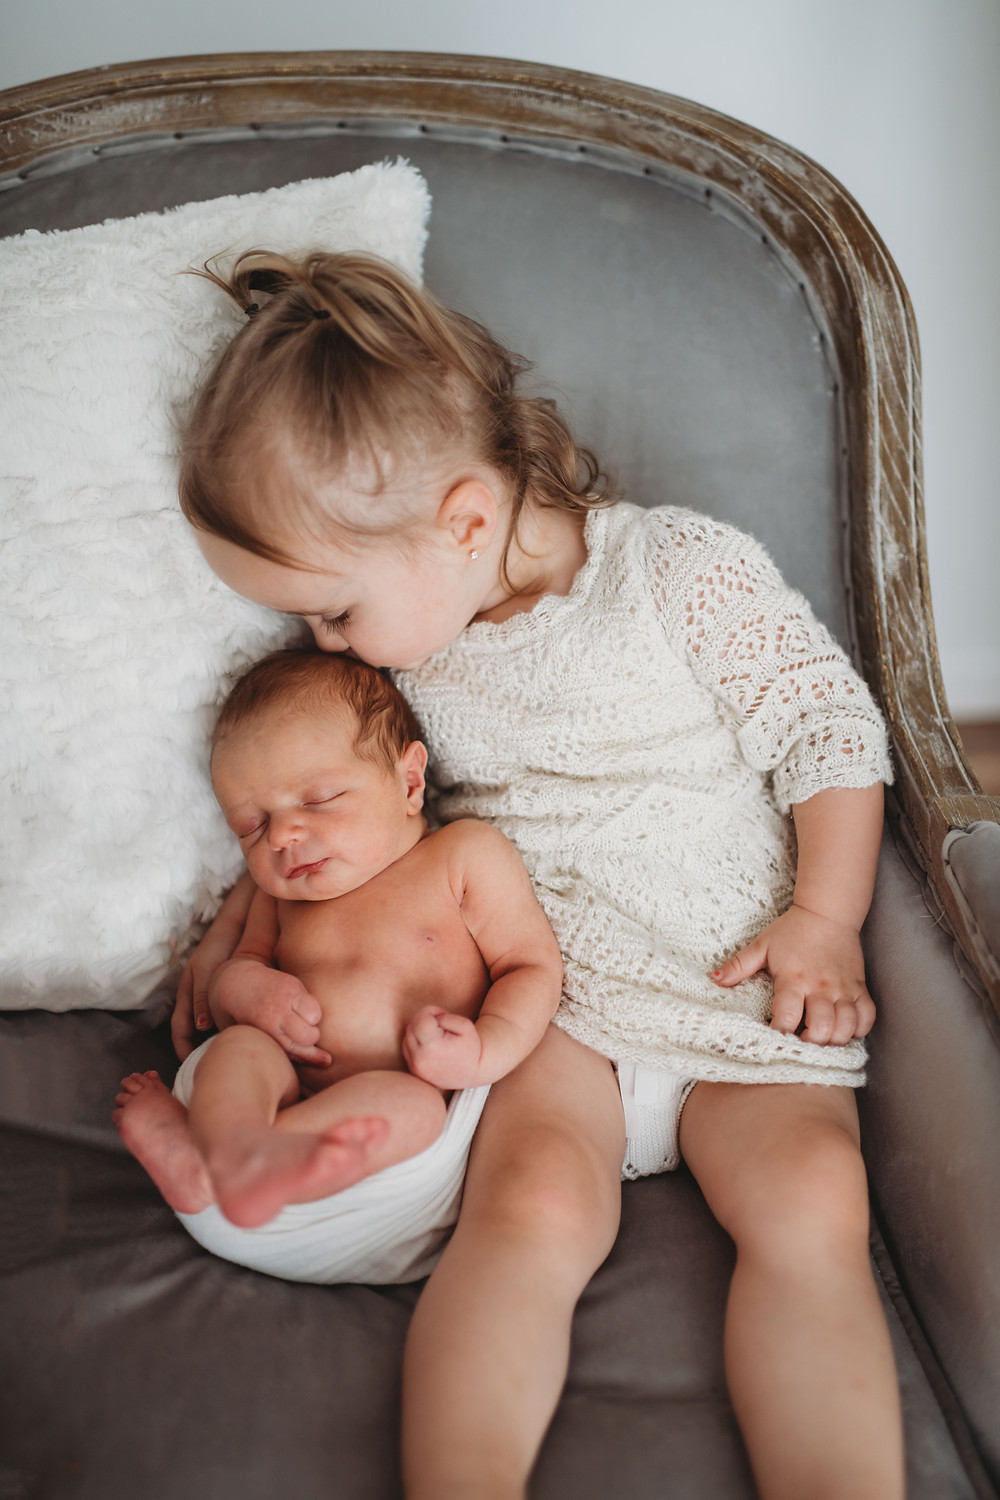 sibling love with newborn baby girl